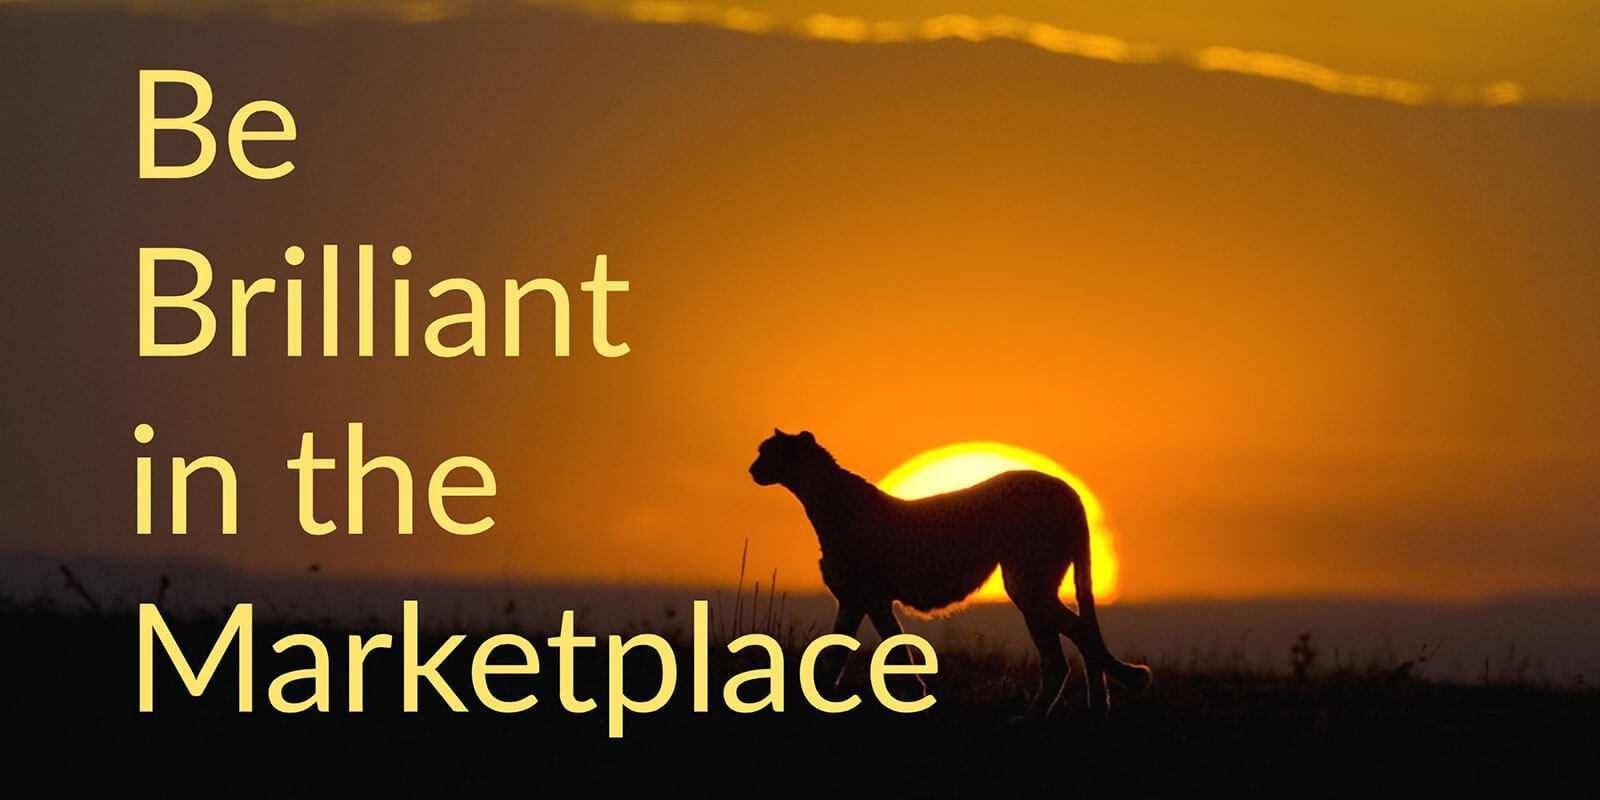 Be Brilliant in the Marketplace